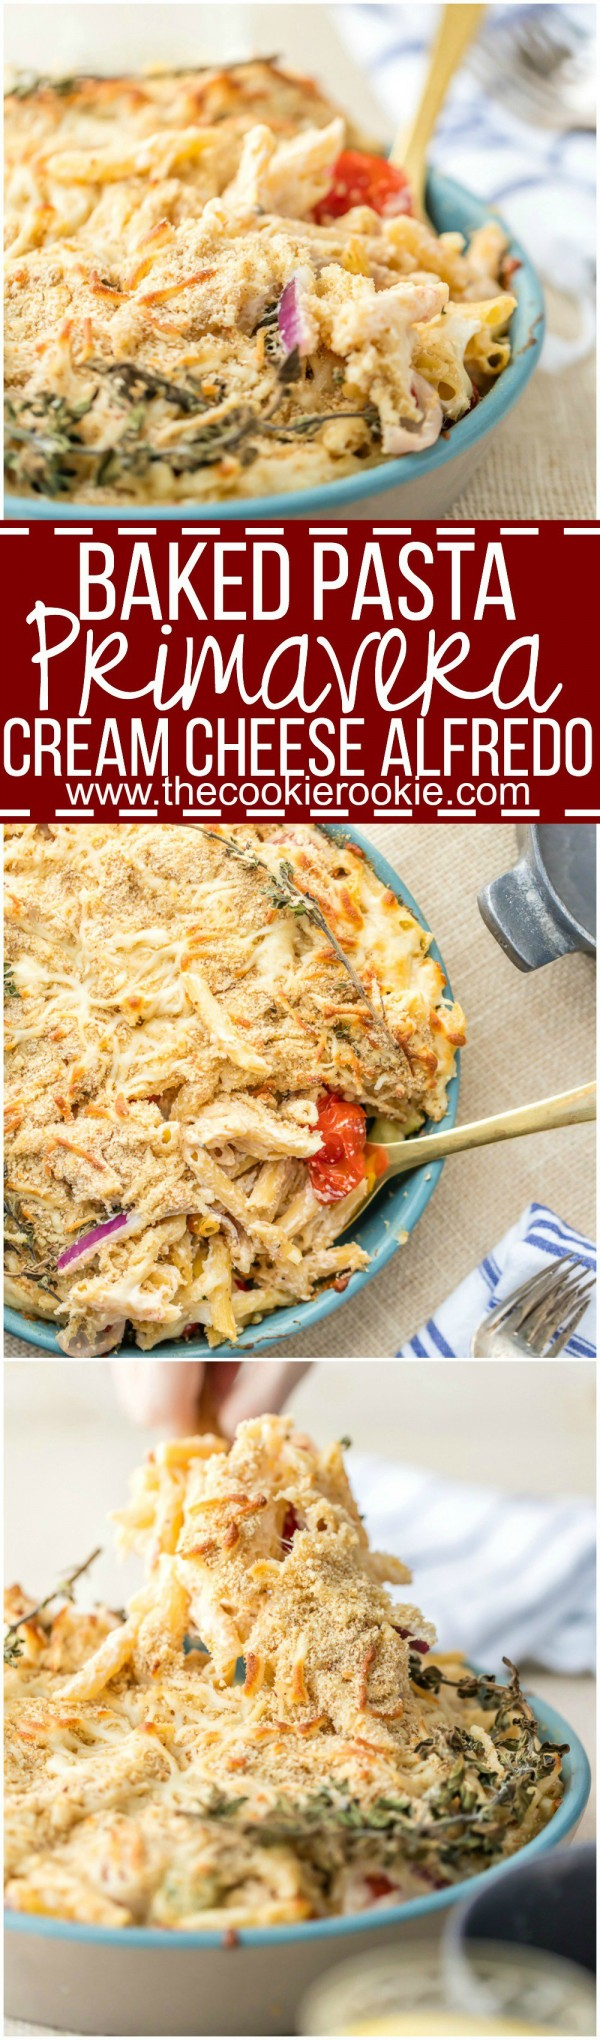 BAKED PASTA PRIMAVERA WITH CREAM CHEESE ALFREDO! This oven baked vegetable pasta with cheesy cream sauce is our favorite easy pasta recipe! The perfect family meal.